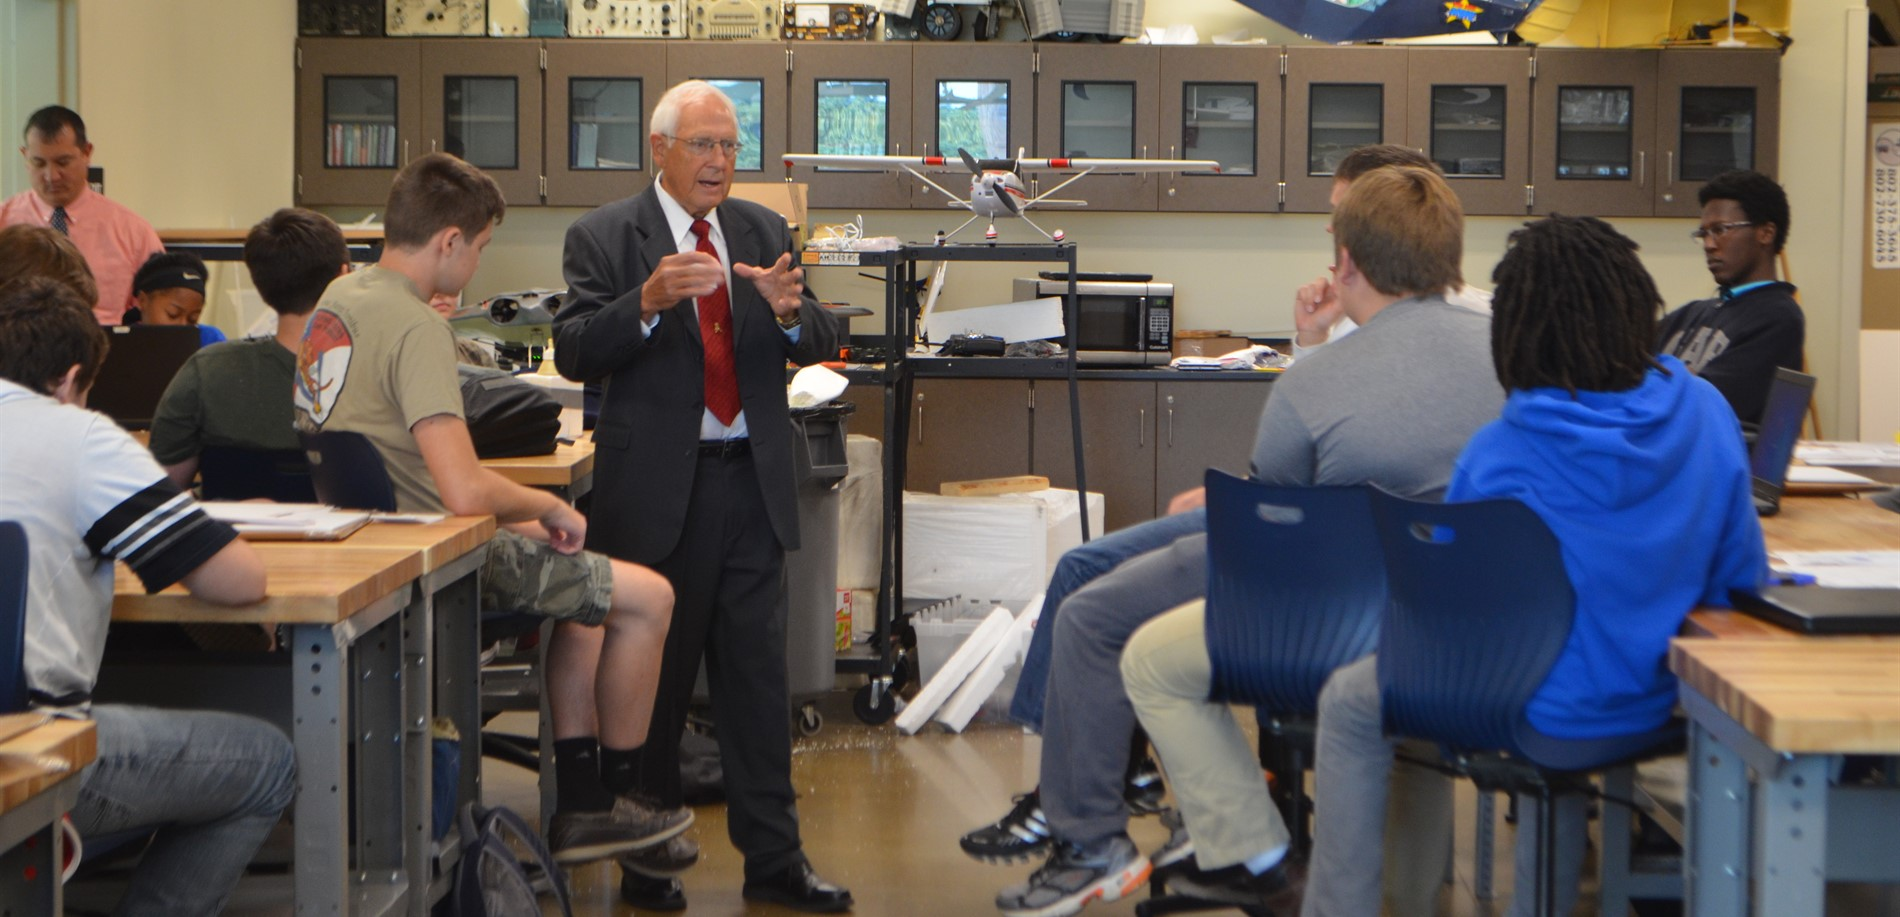 2017 Distinguished Alumni honoree Paul McCarty spoke to Air & Space Academy students at EC3.